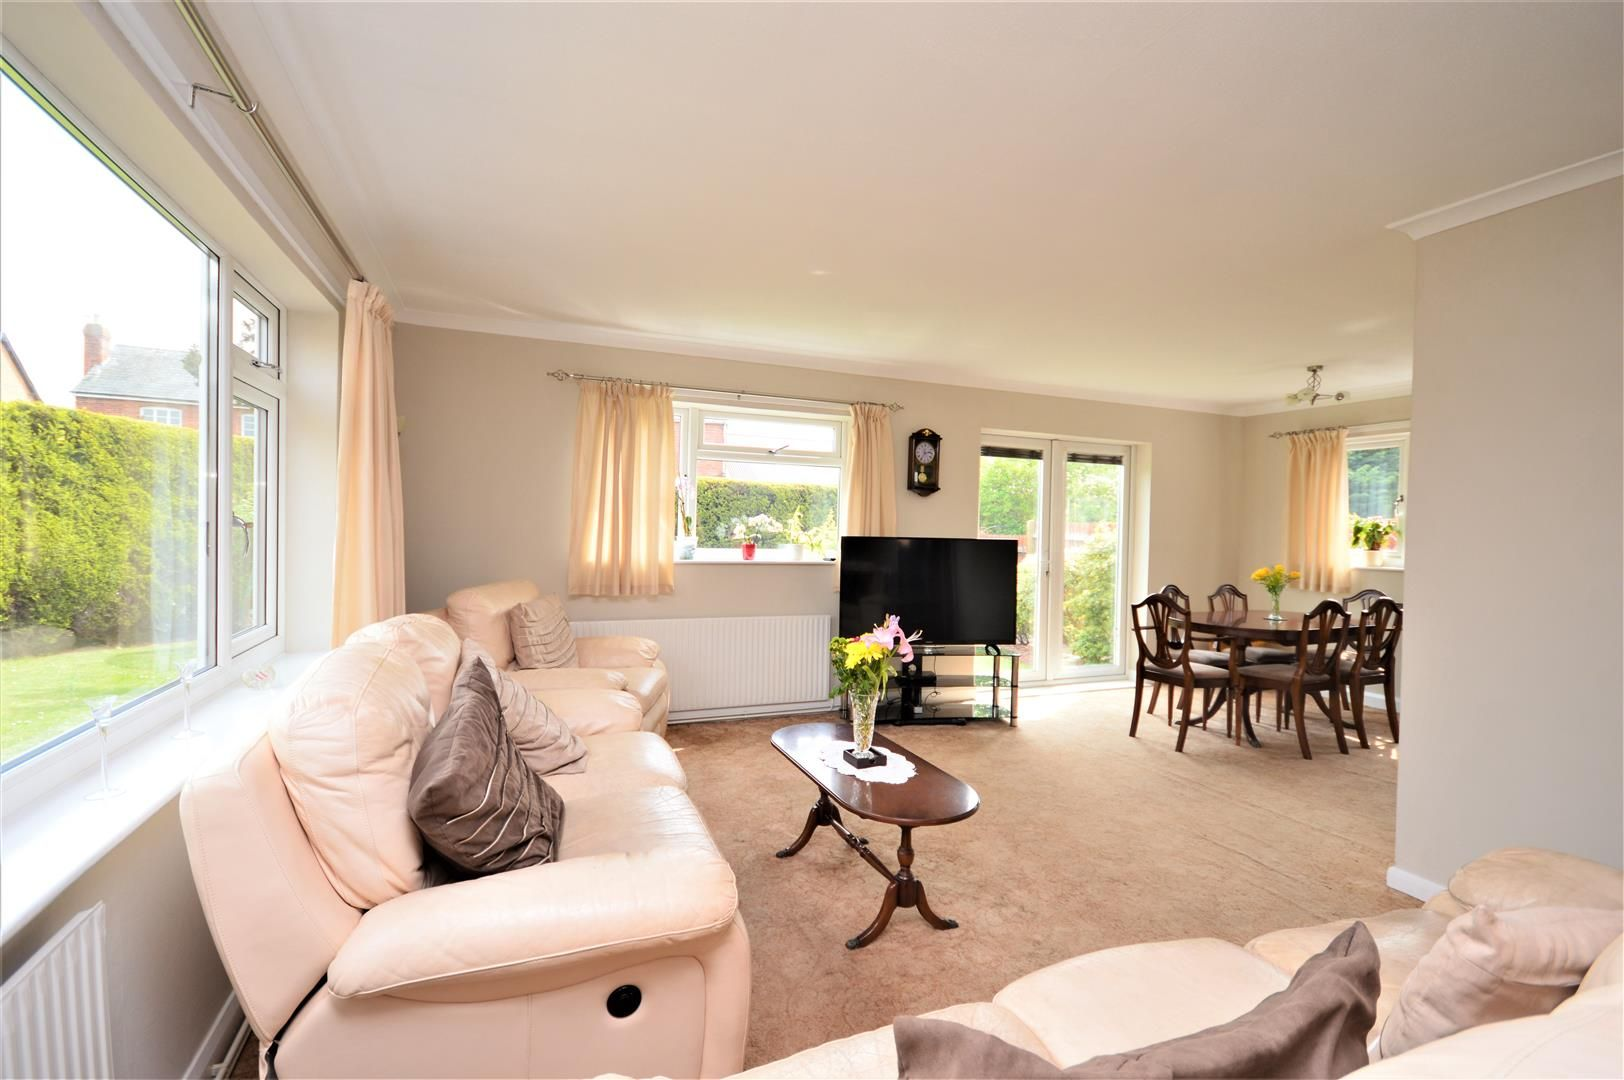 4 bed detached-bungalow for sale in Marden 2